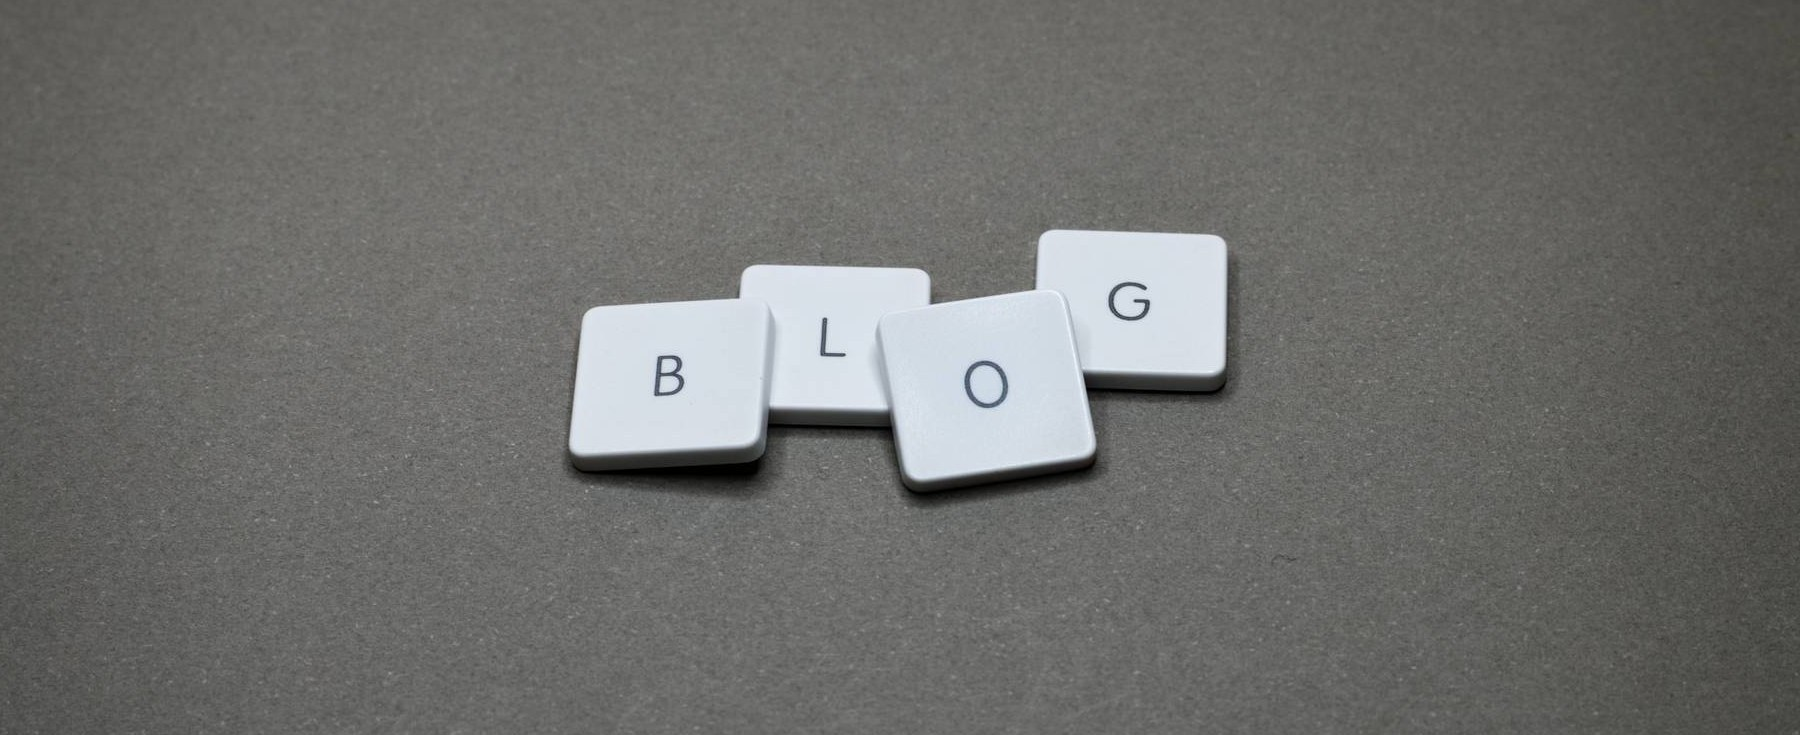 Blogs Viviana Alcocer Consulting